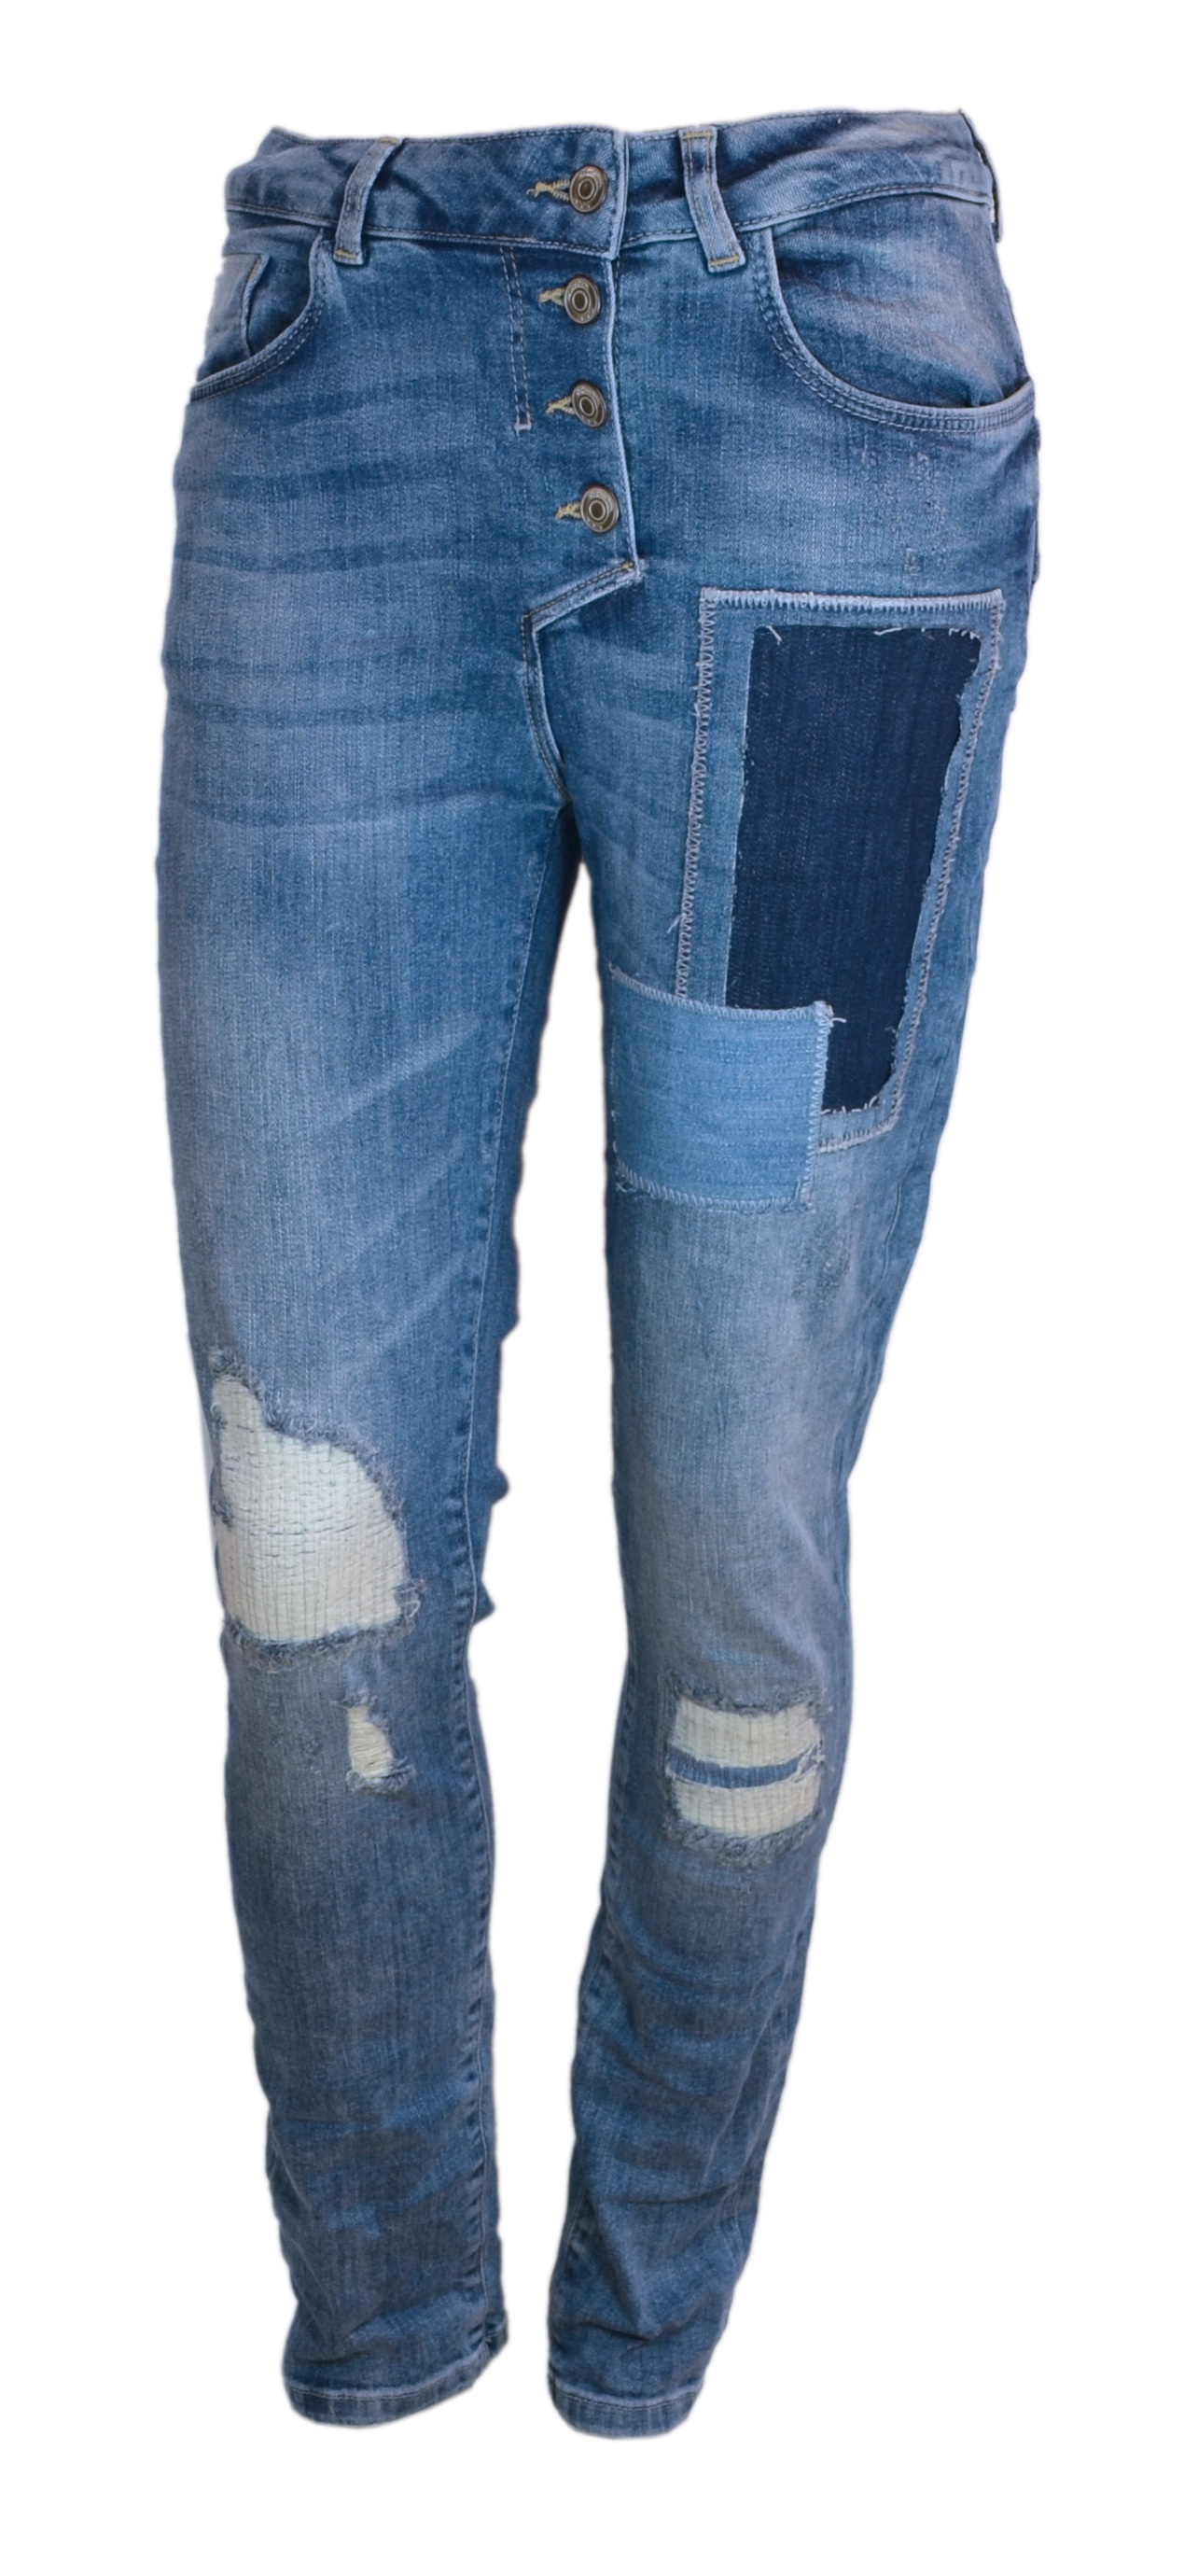 bypias-patchwork-jeans-perfectfit